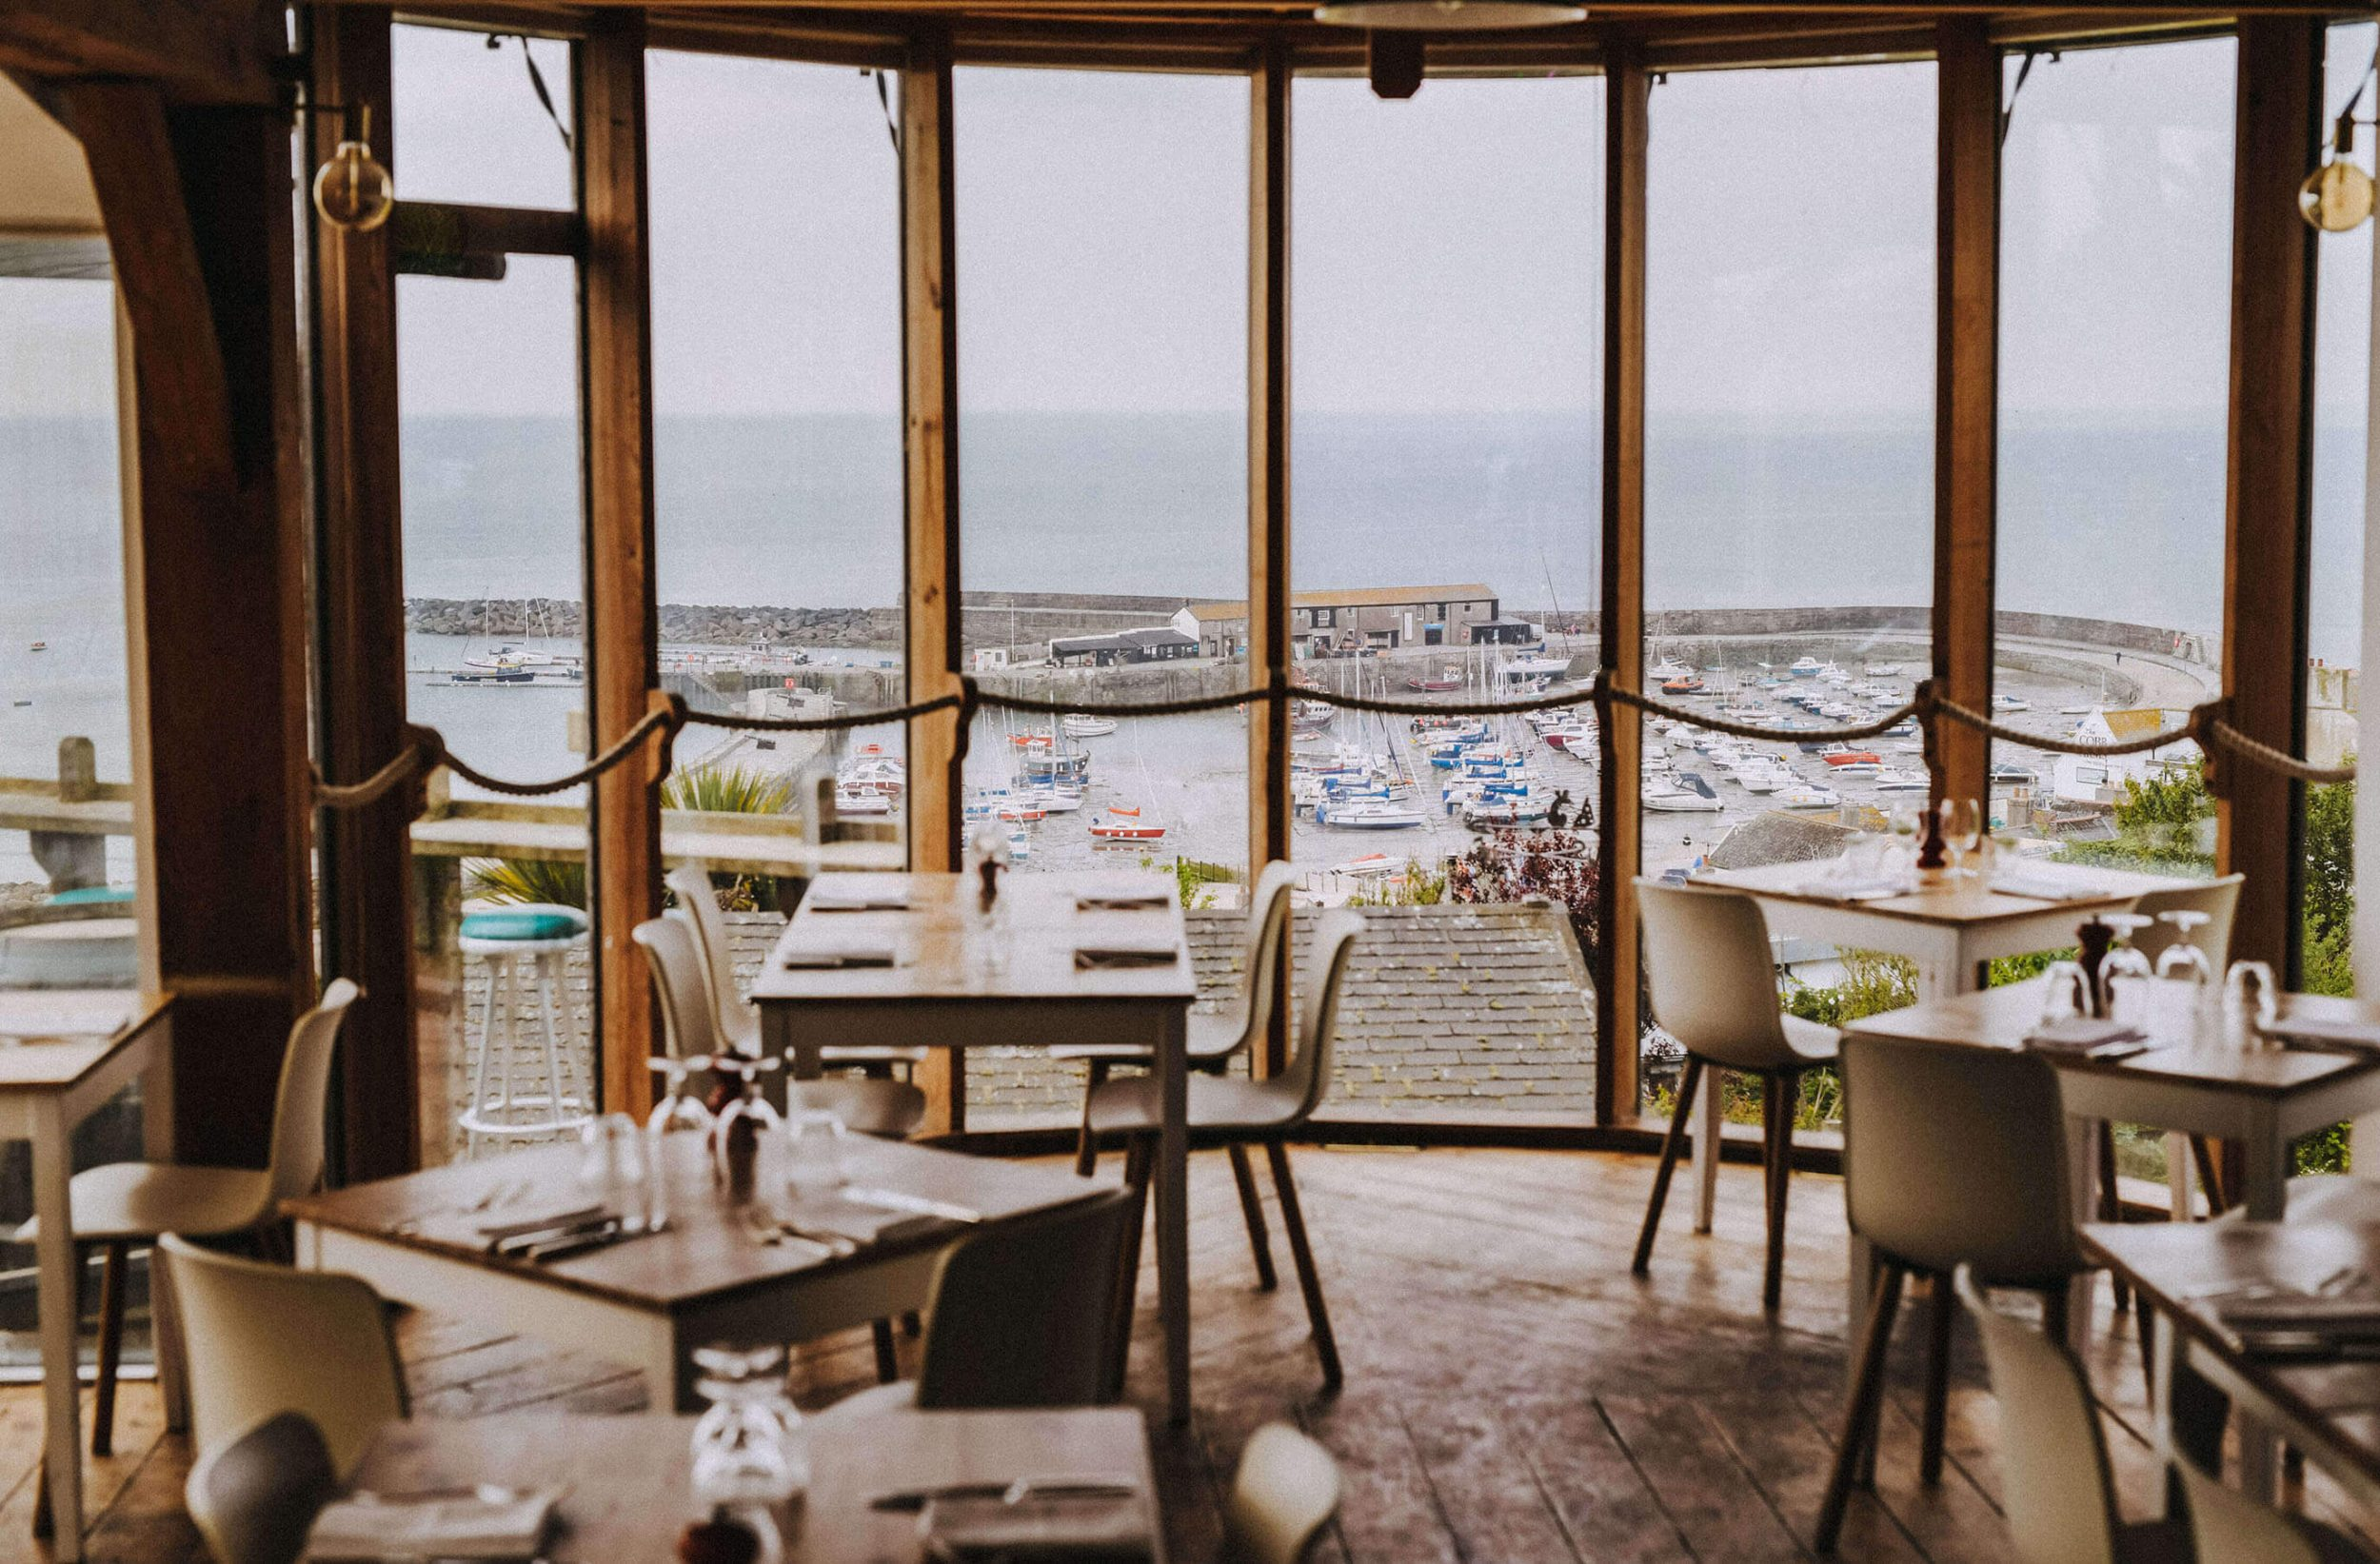 The Oyster & Fish House window view